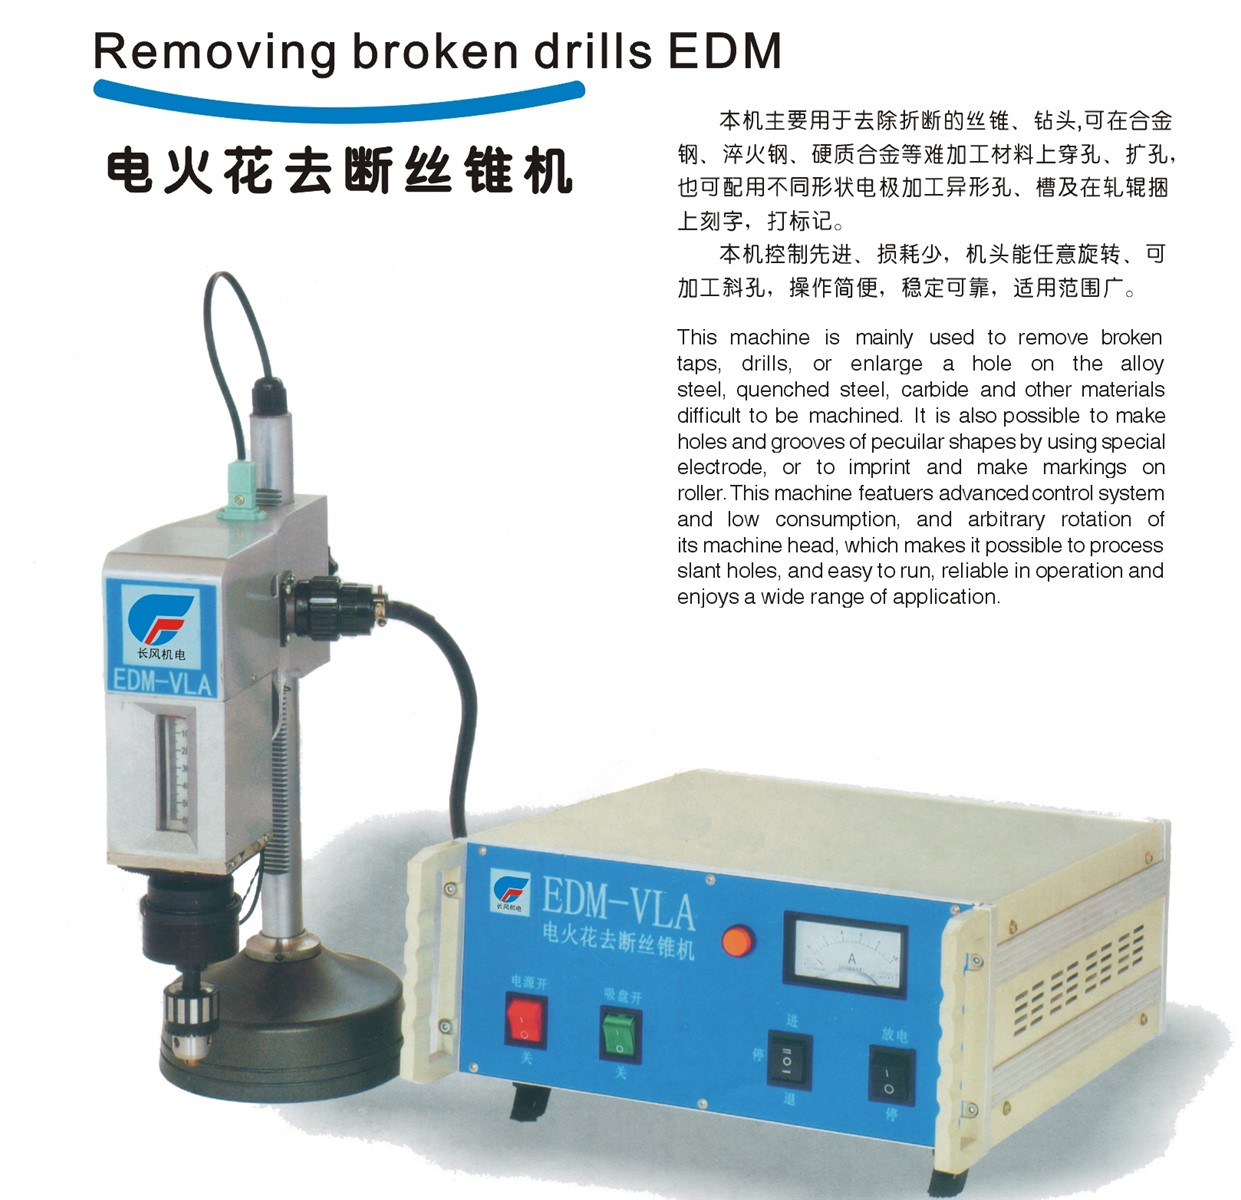 High Efficiency Edm Broken Tap/Drill Remover